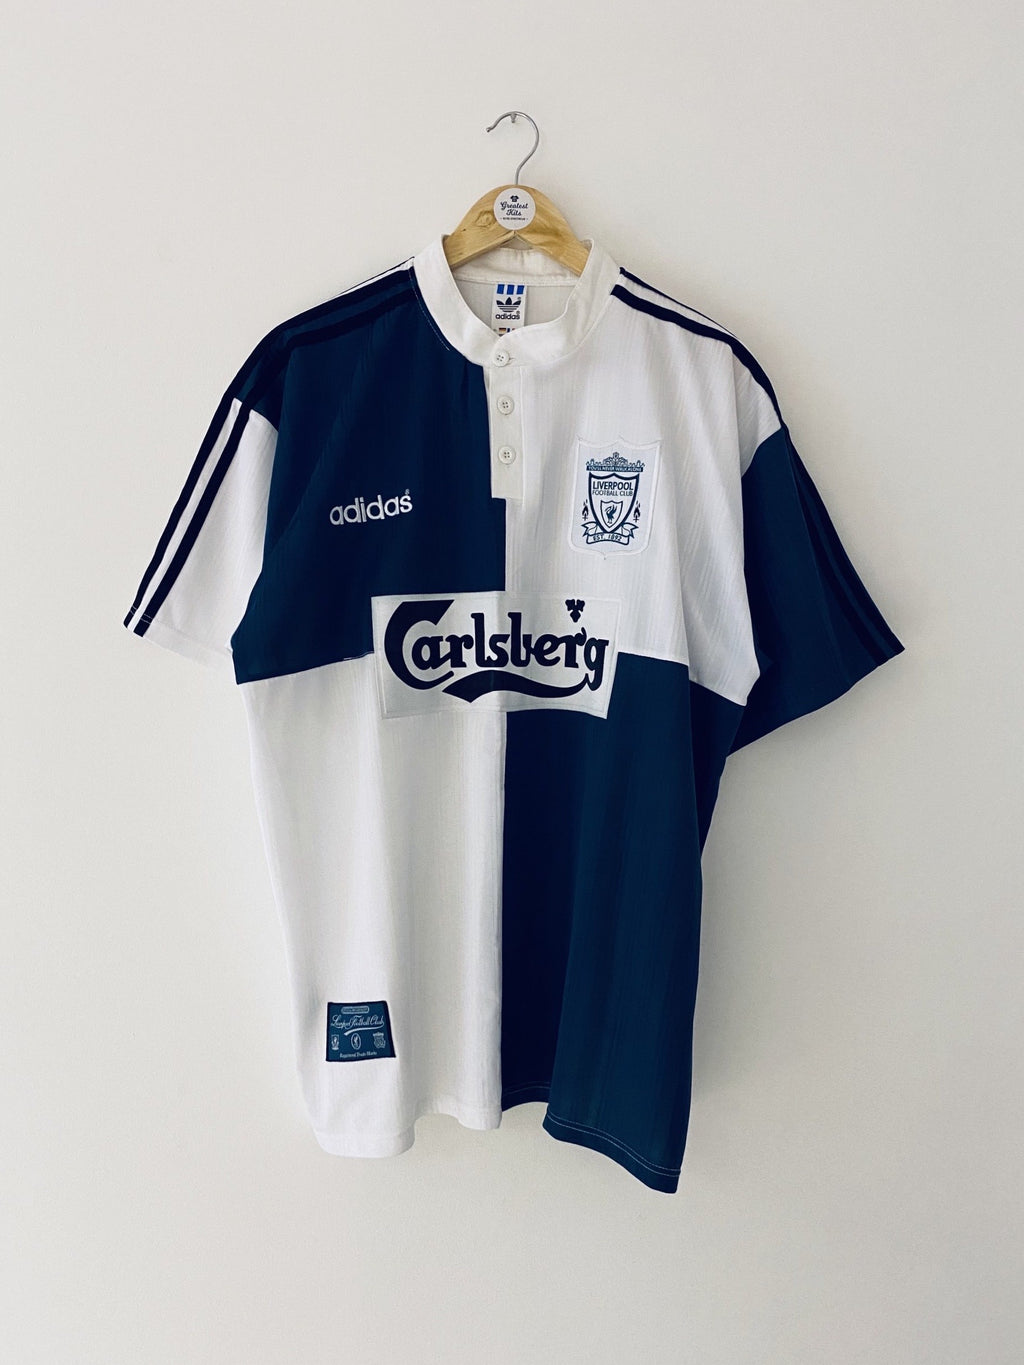 1995/96 Liverpool Away Shirt (XL) 9/10